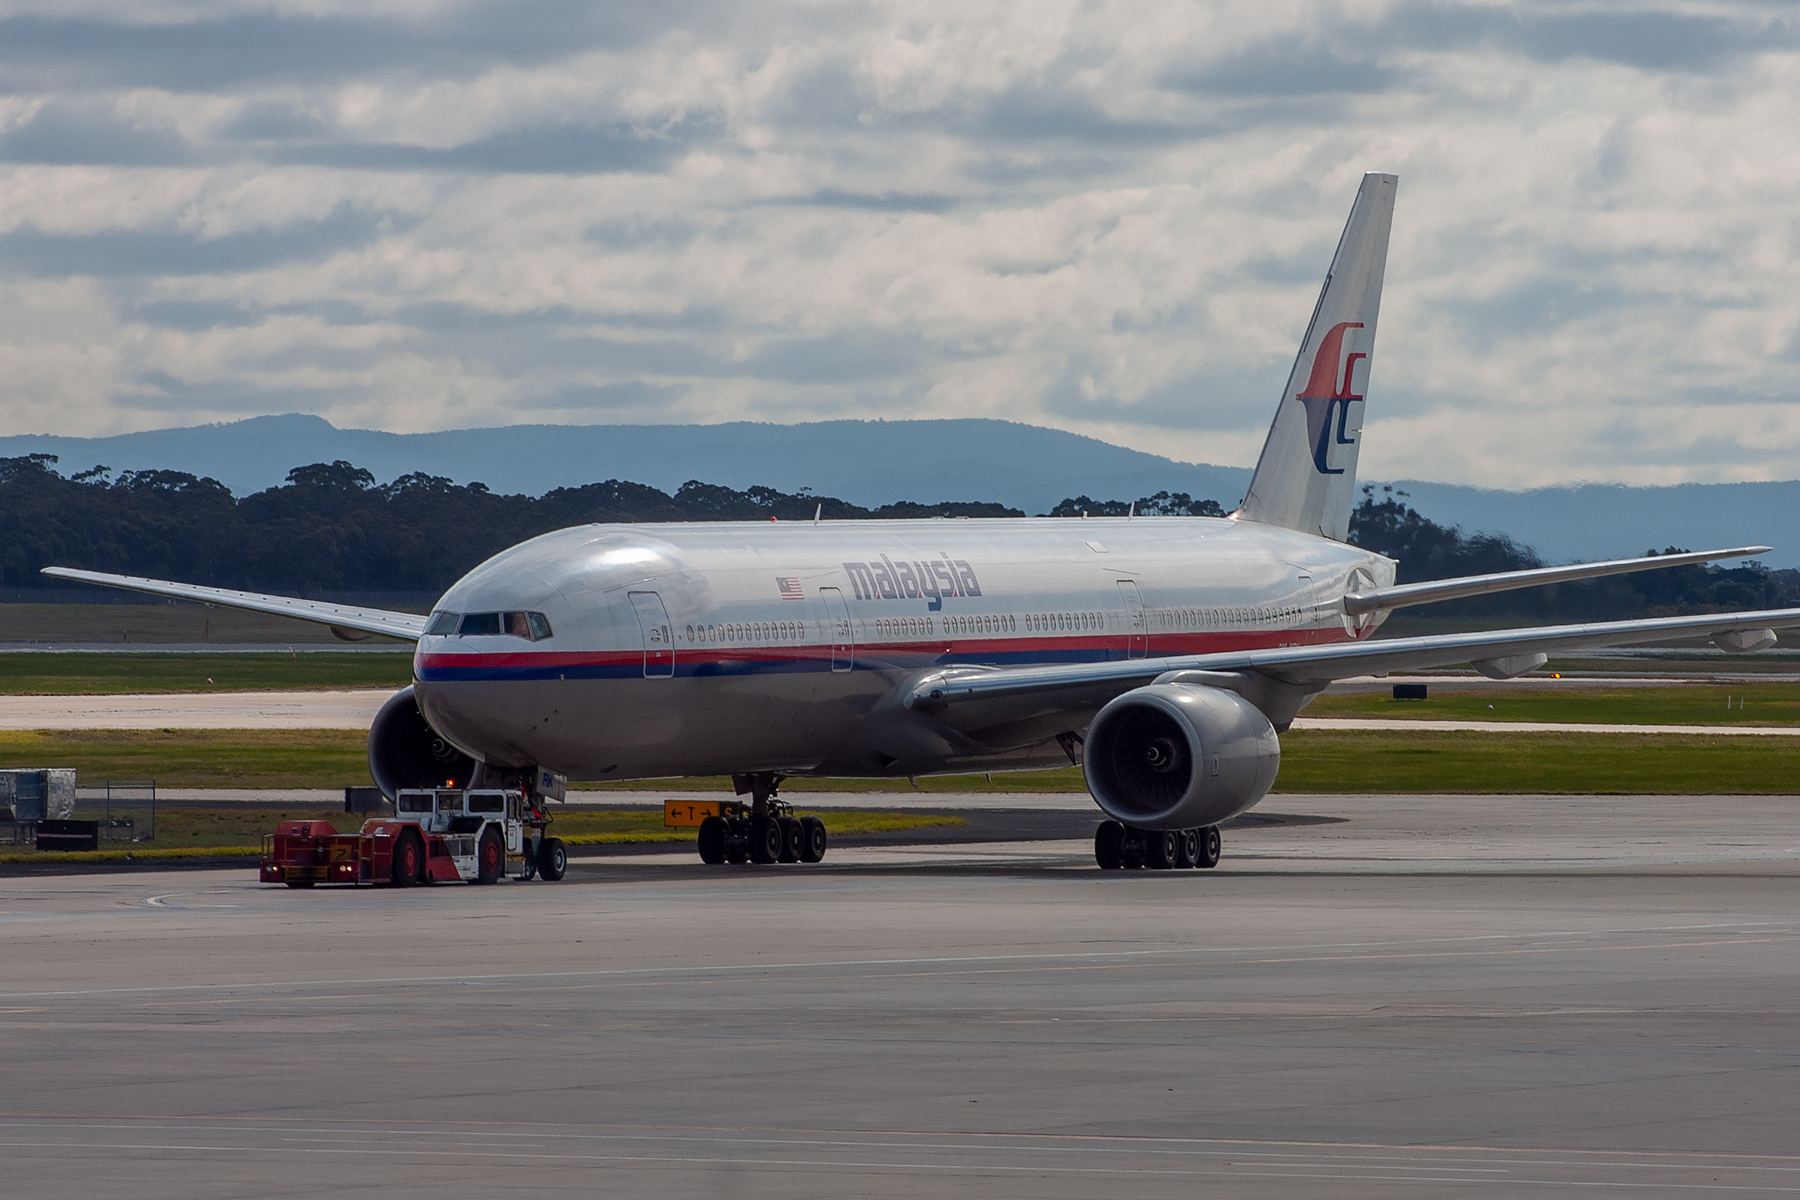 Malaysian Airlines Boeing 777-200ER 9M-MRK at Tullamarine